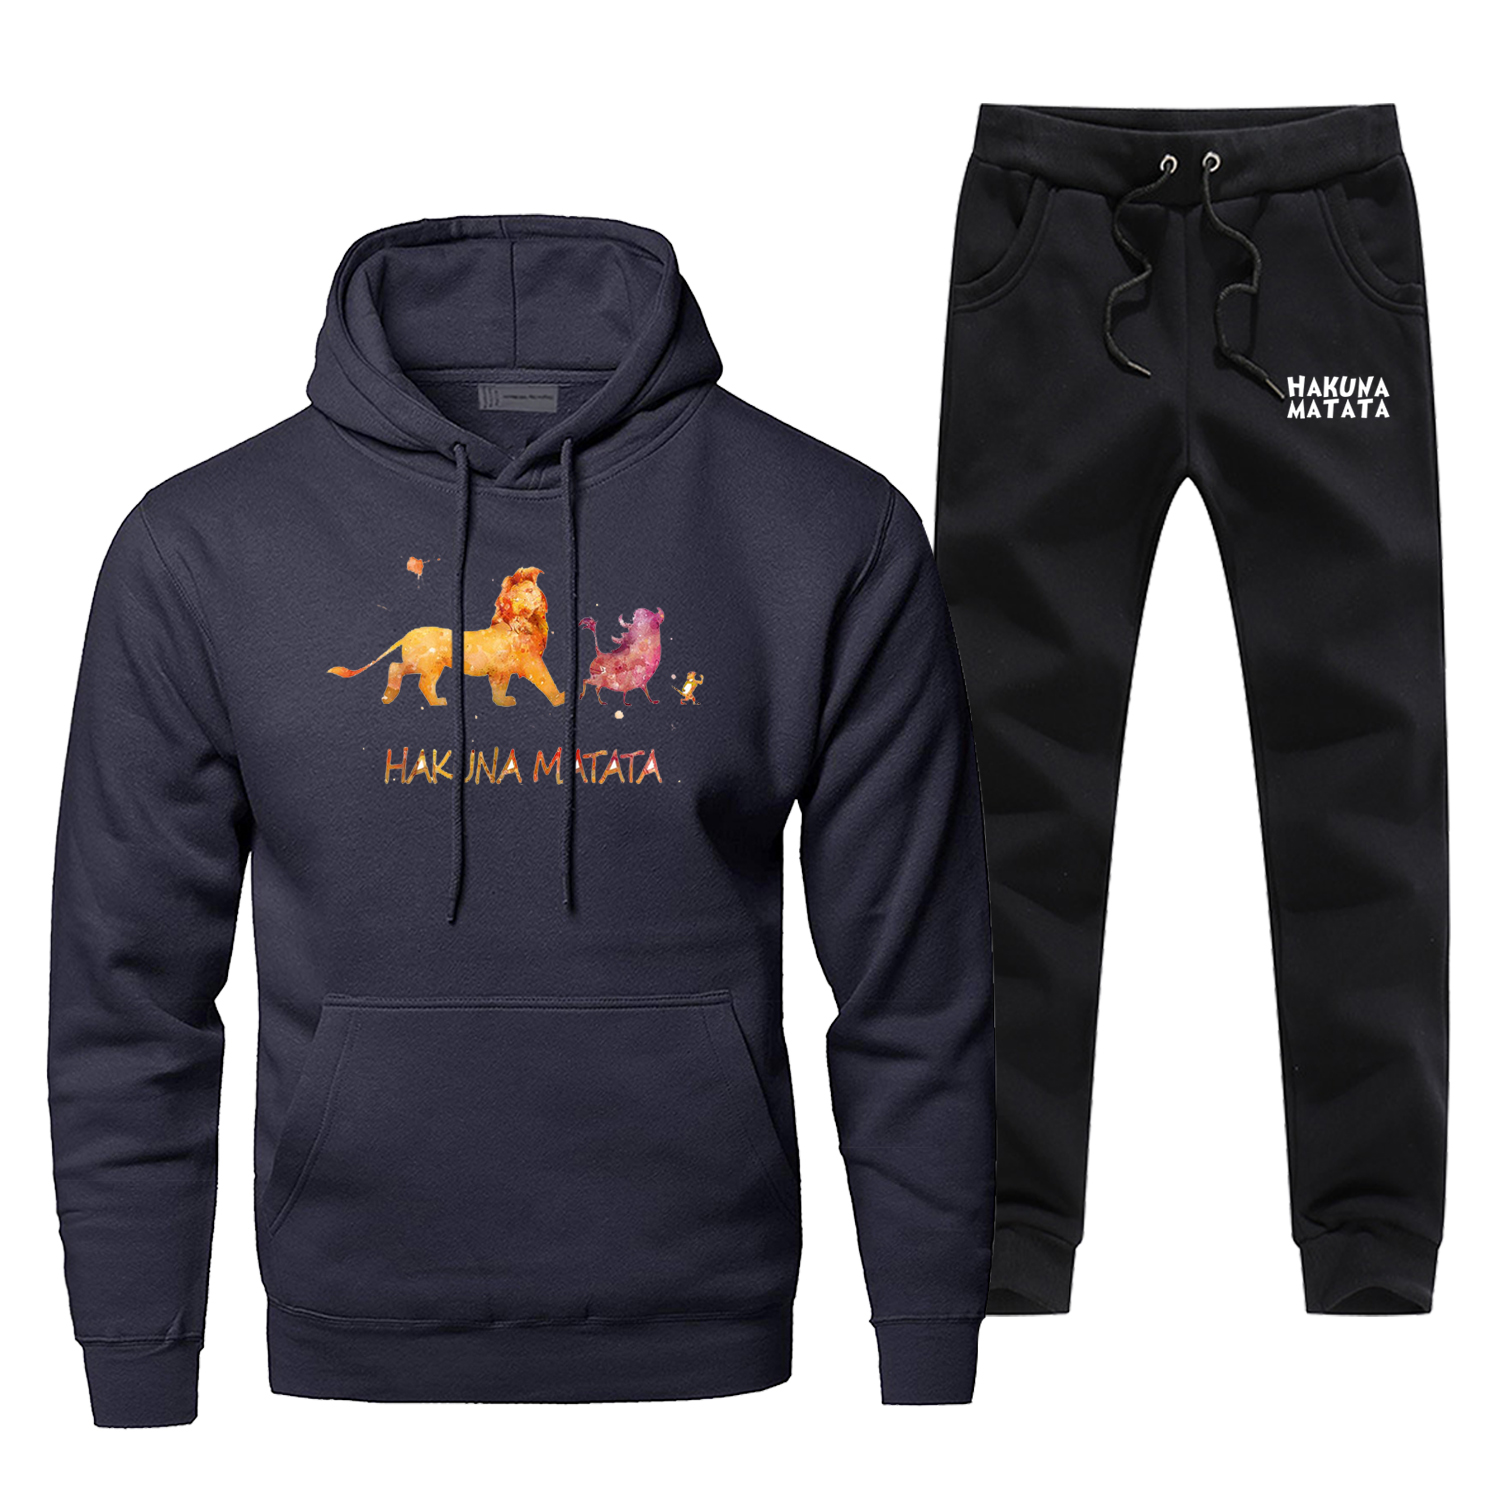 The Lion King Pants Sweatshirt Hakuna Matata Sportsman Wear Fashion Cartoon Casual Sweatpants Fitness Male Set Winter Streetwear